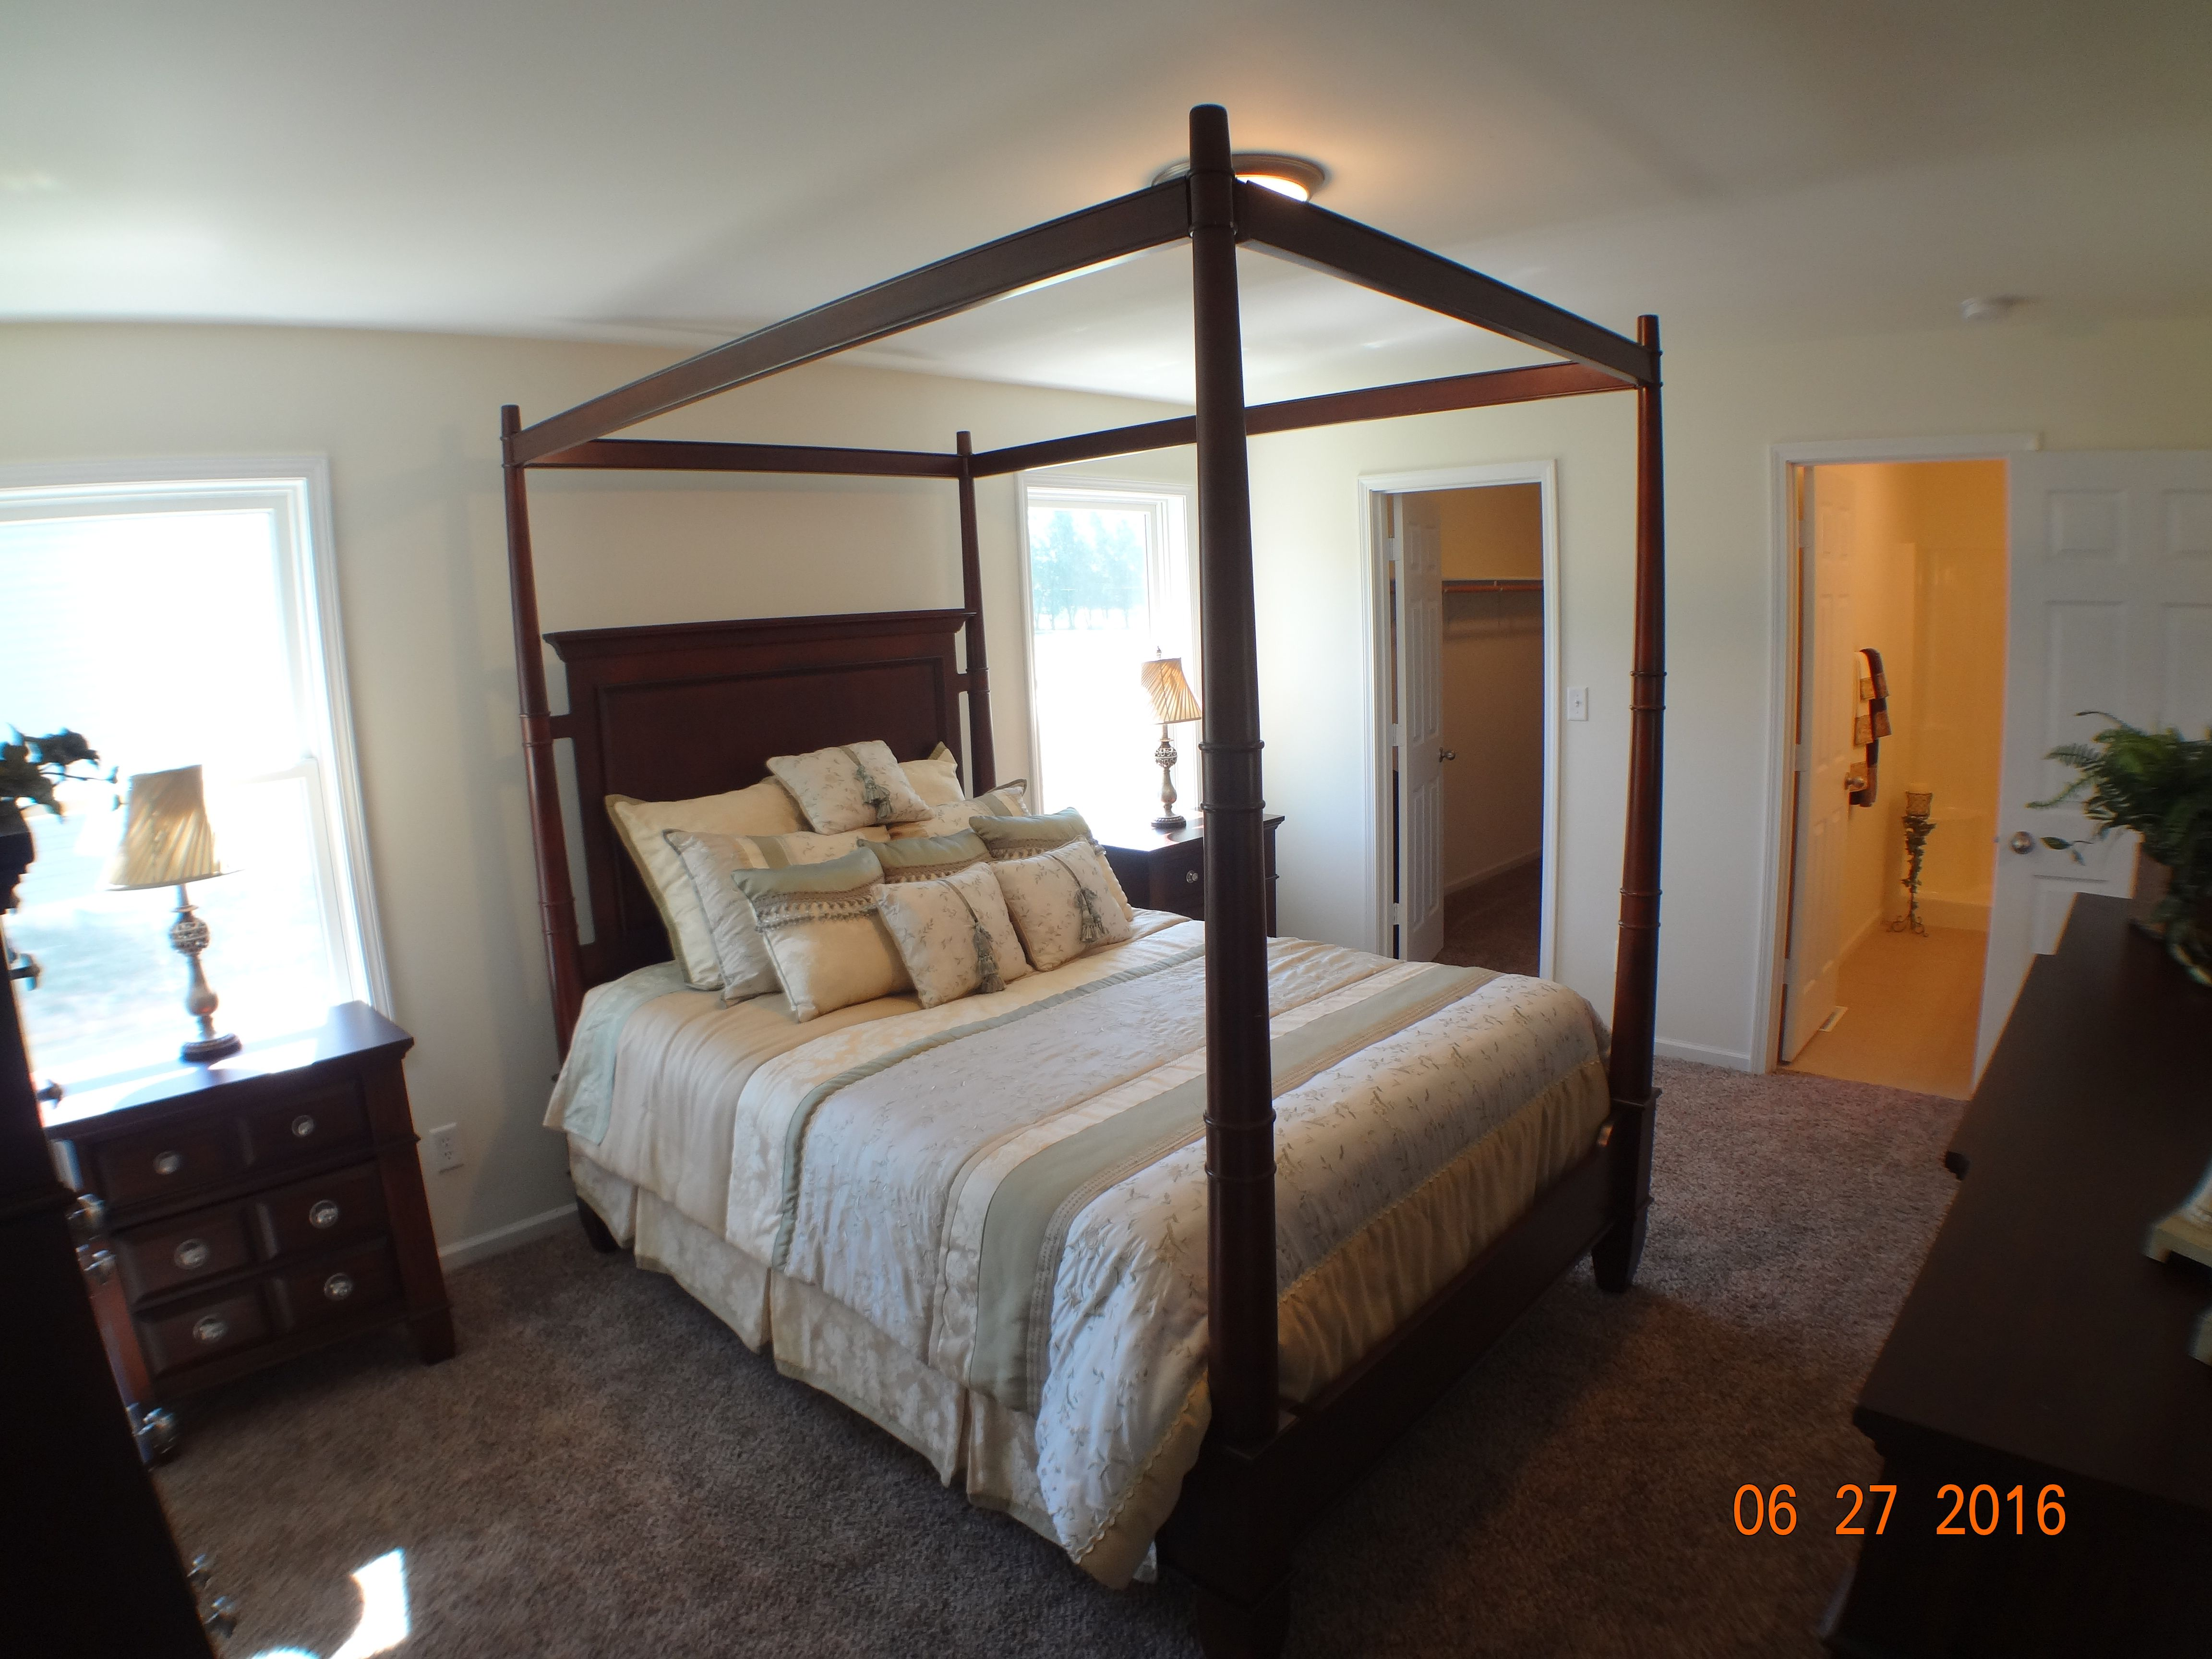 Bedroom featured in the Cheyenne II By Accent Homes Inc. in Gary, IN